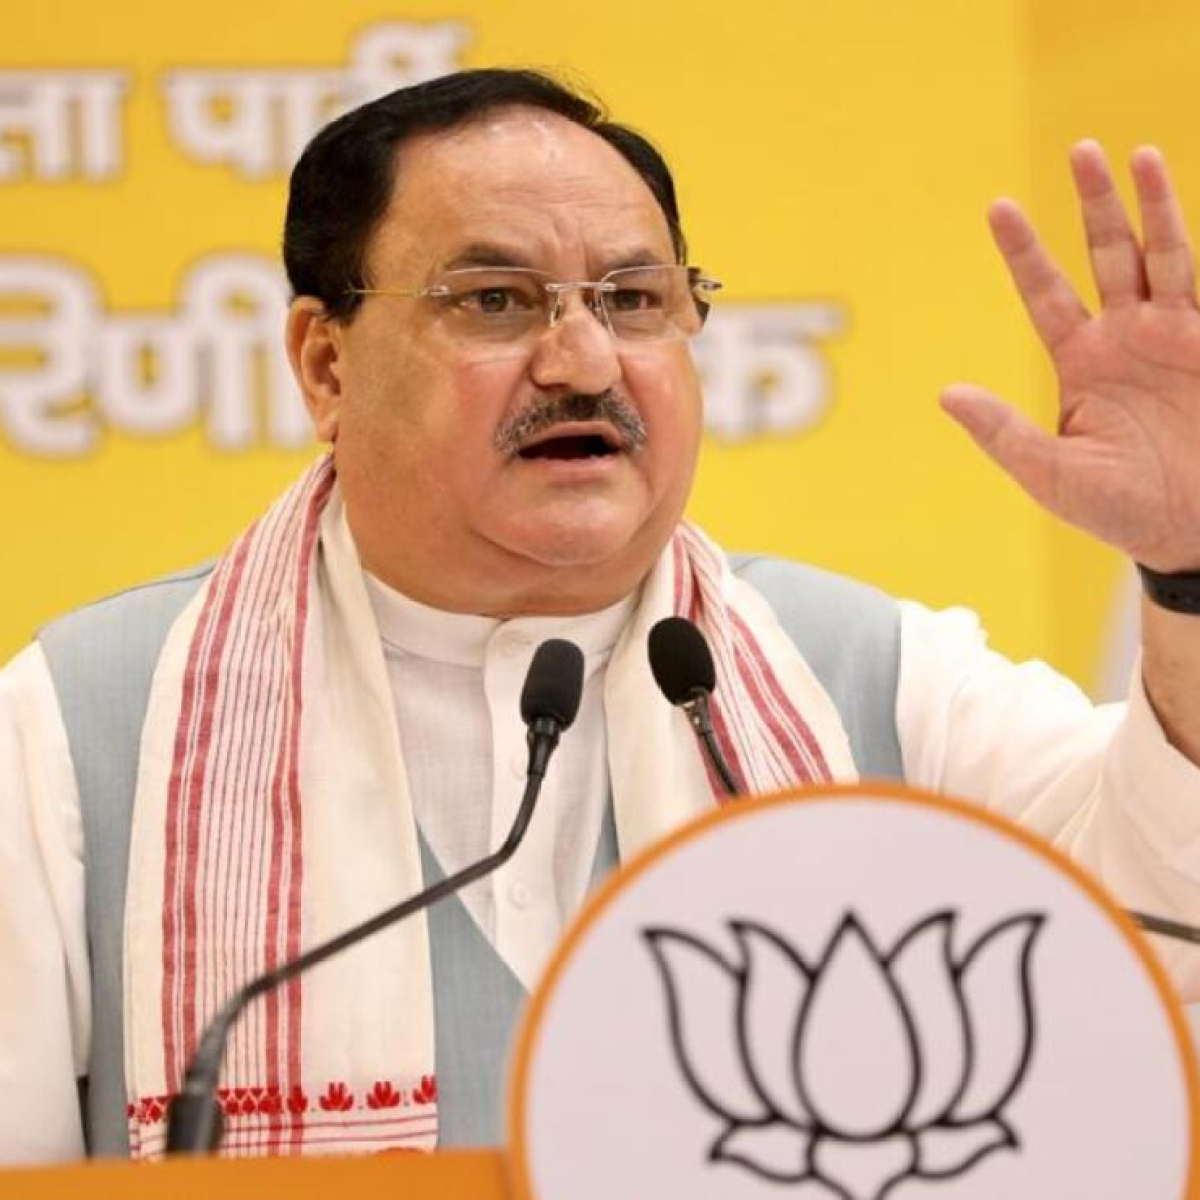 'BJP main opposition in Bengal, will continue to spread its ideology', says JP Nadda after West Bengal poll results